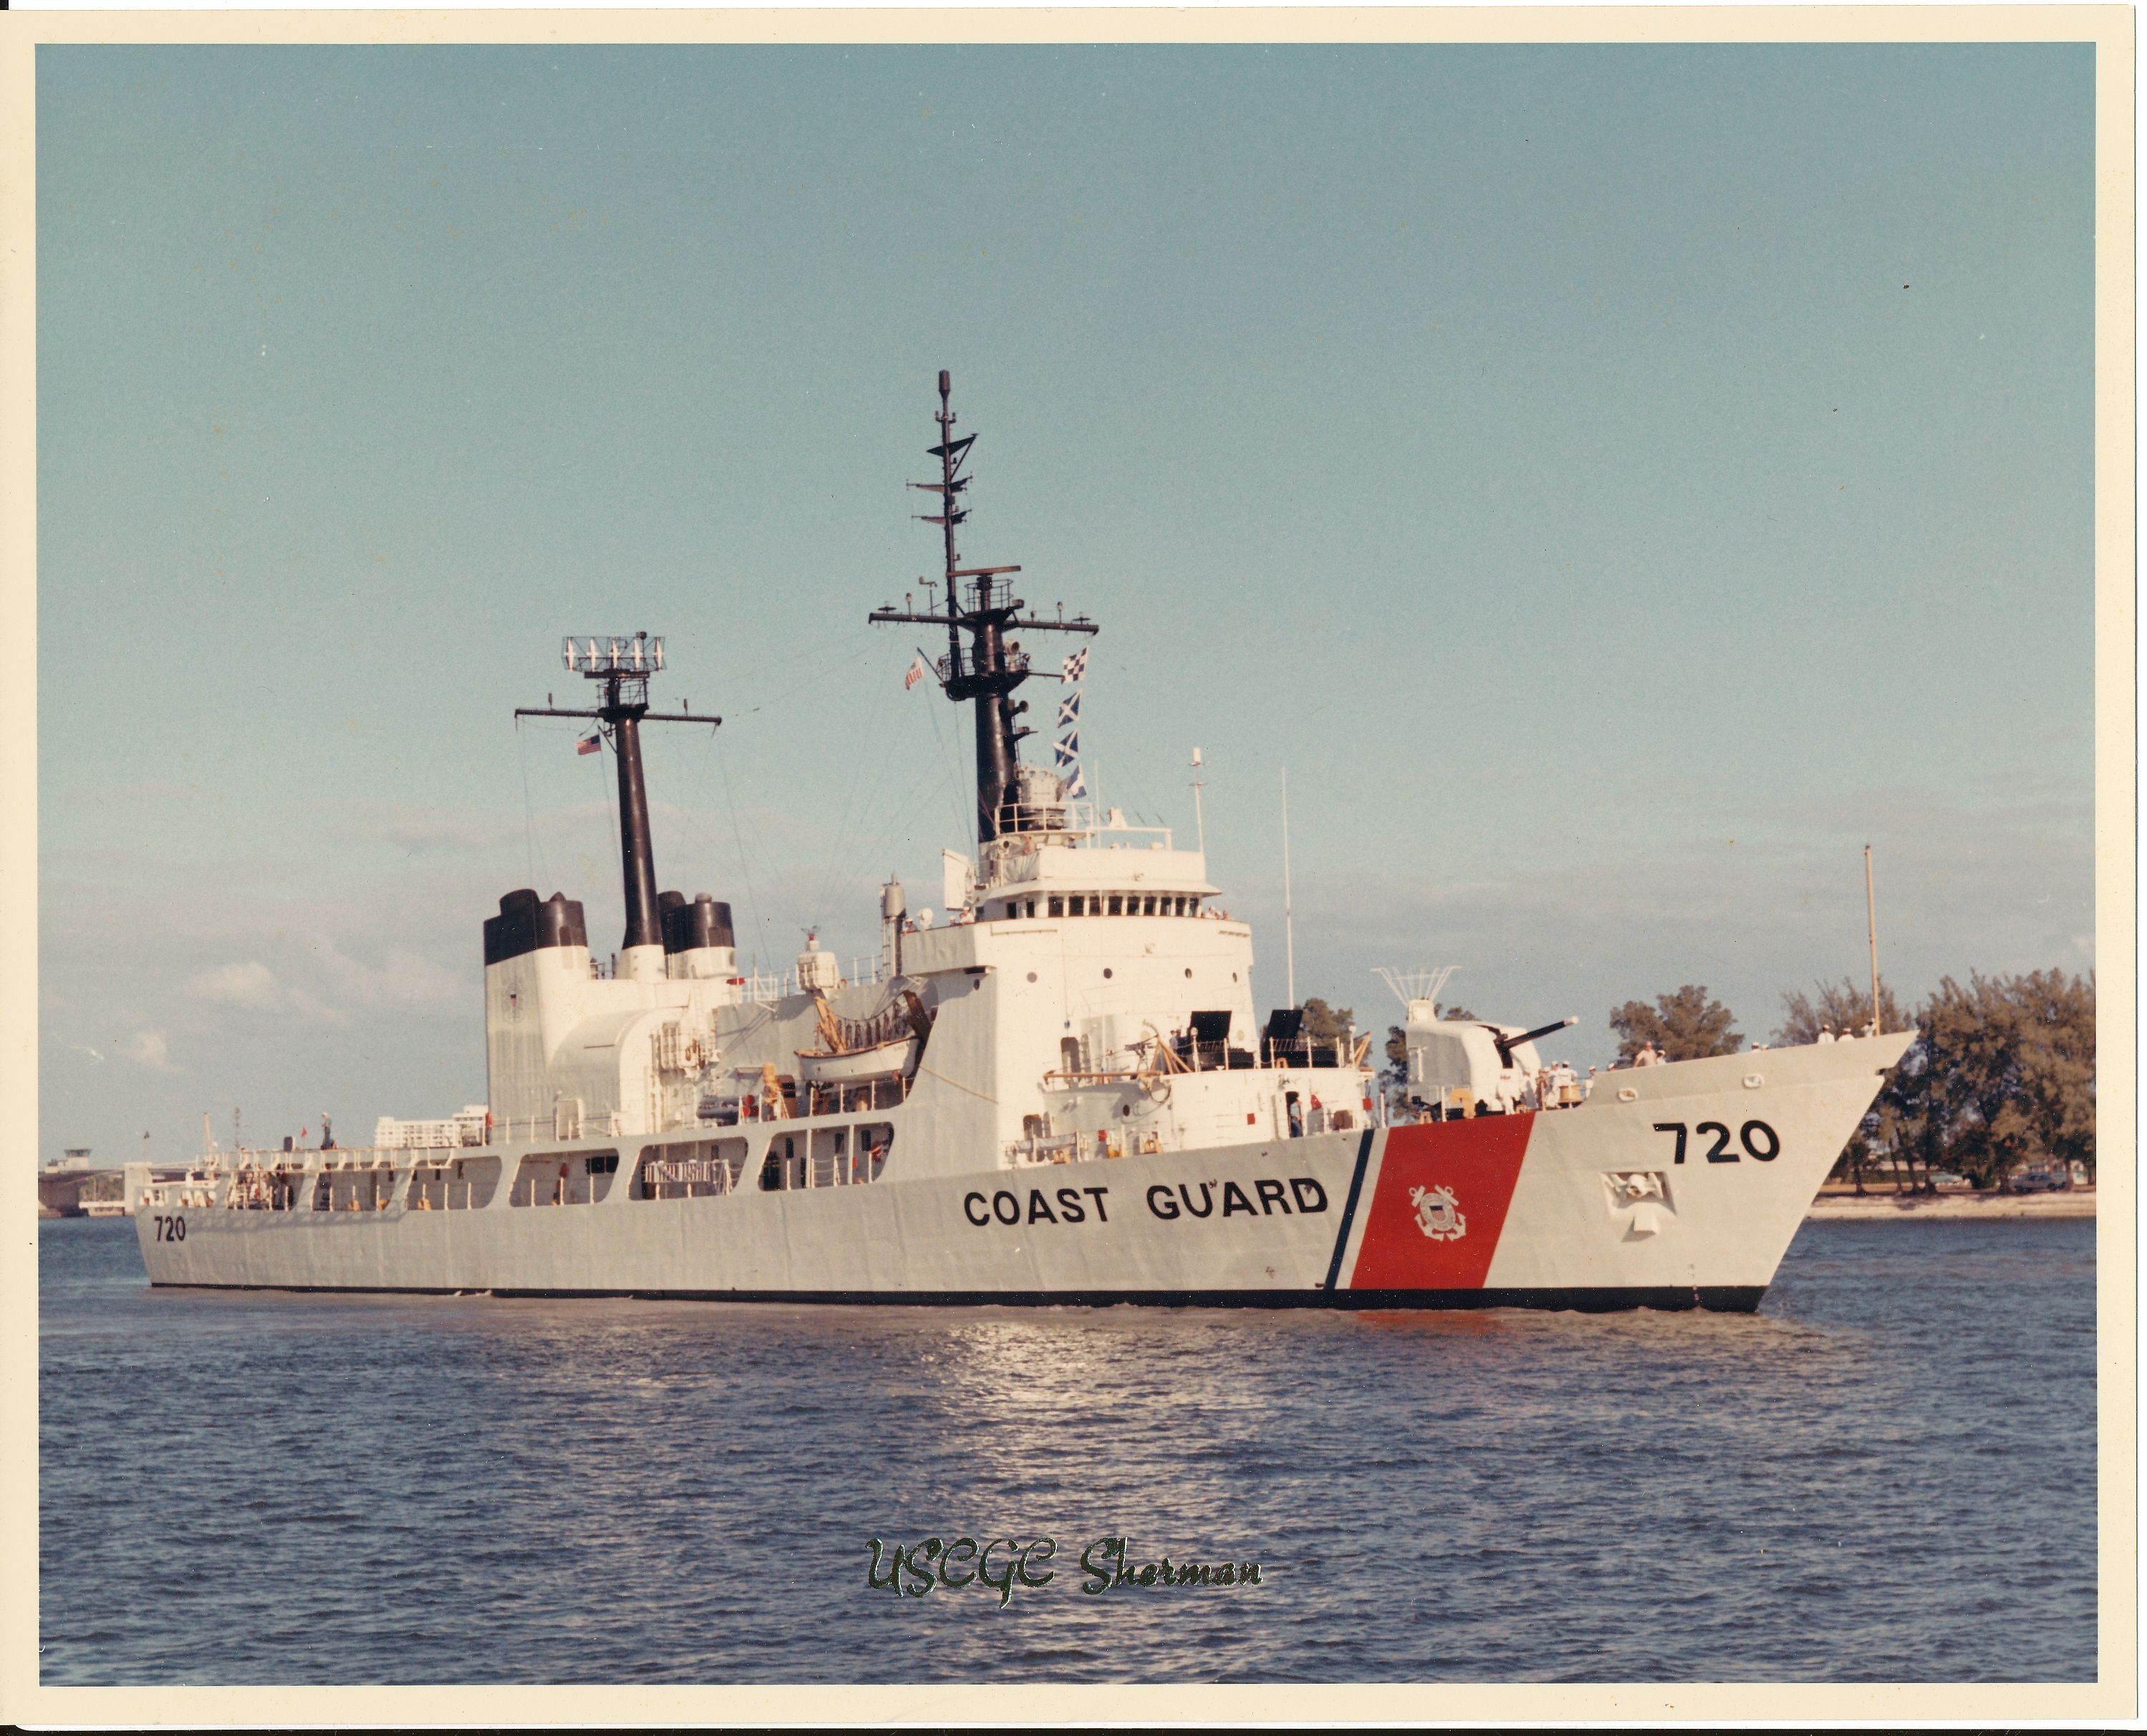 Official Photo of USCGC Sherman WHEC 720 the year she was commissioned in 1968